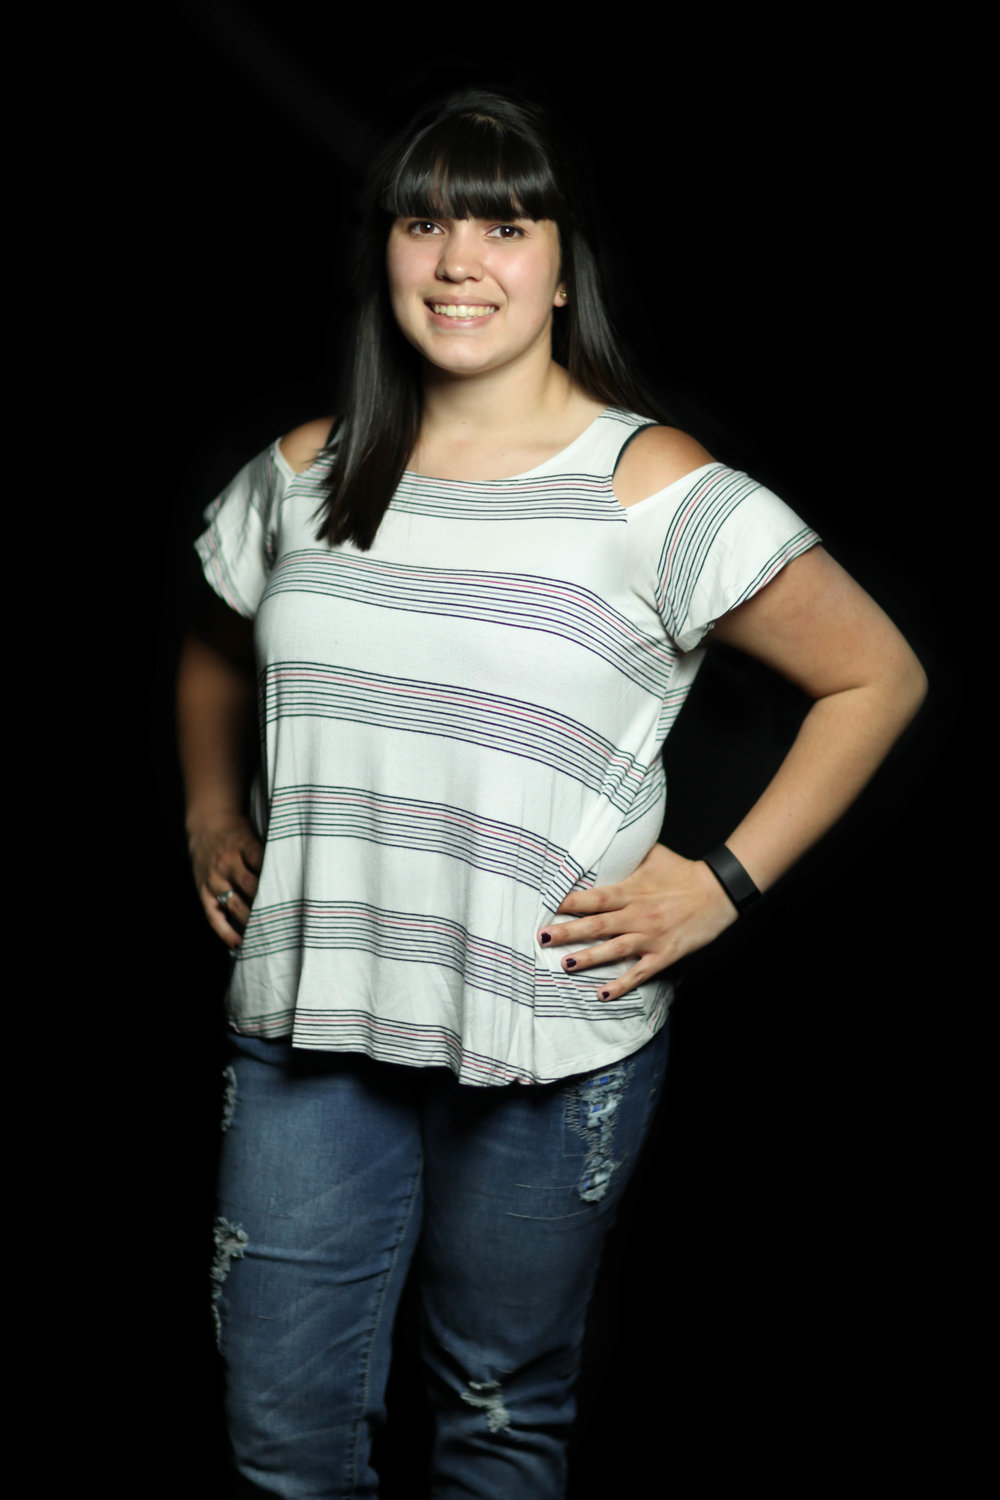 """Maekenzie's father is a third generation Mexican-American. While she grew identifying as both Mexican and American, she has often felt disconnected from that side of her culture and has only recently begun to figure out what being biracial means to her. She didn't grow up speaking Spanish, but has since taken classes in high school and college.    """"And, now I'm just starting to figure out what it means to be biracial and have that whole idea of White and Hispanic…    It's different because there is this idea of what your race is compared to culture and I think those are two different things. So, my culture is very much European...We don't do Day of the Dead, we don't do like anything like that, or what you would consider maybe the mainstream, Hispanic culture. So that side of it, I know nothing about, and I think I can easily tell somebody that, but race-wise, ancestors wise, I can be like, I am half this [Hispanic]. In a way, when I talk to people...it's hard for me to be like """"but I am"""", because I can't back it up like facts.      And, like I said, coming from the community I did, it was more, """"prove yourself"""", so beside my genetics, I can't really prove that there is much else there [culturally].... I [also] think that's one of things that comes with saying your biracial. As soon as you say you are biracial, you are expected to know both cultures. """""""""""